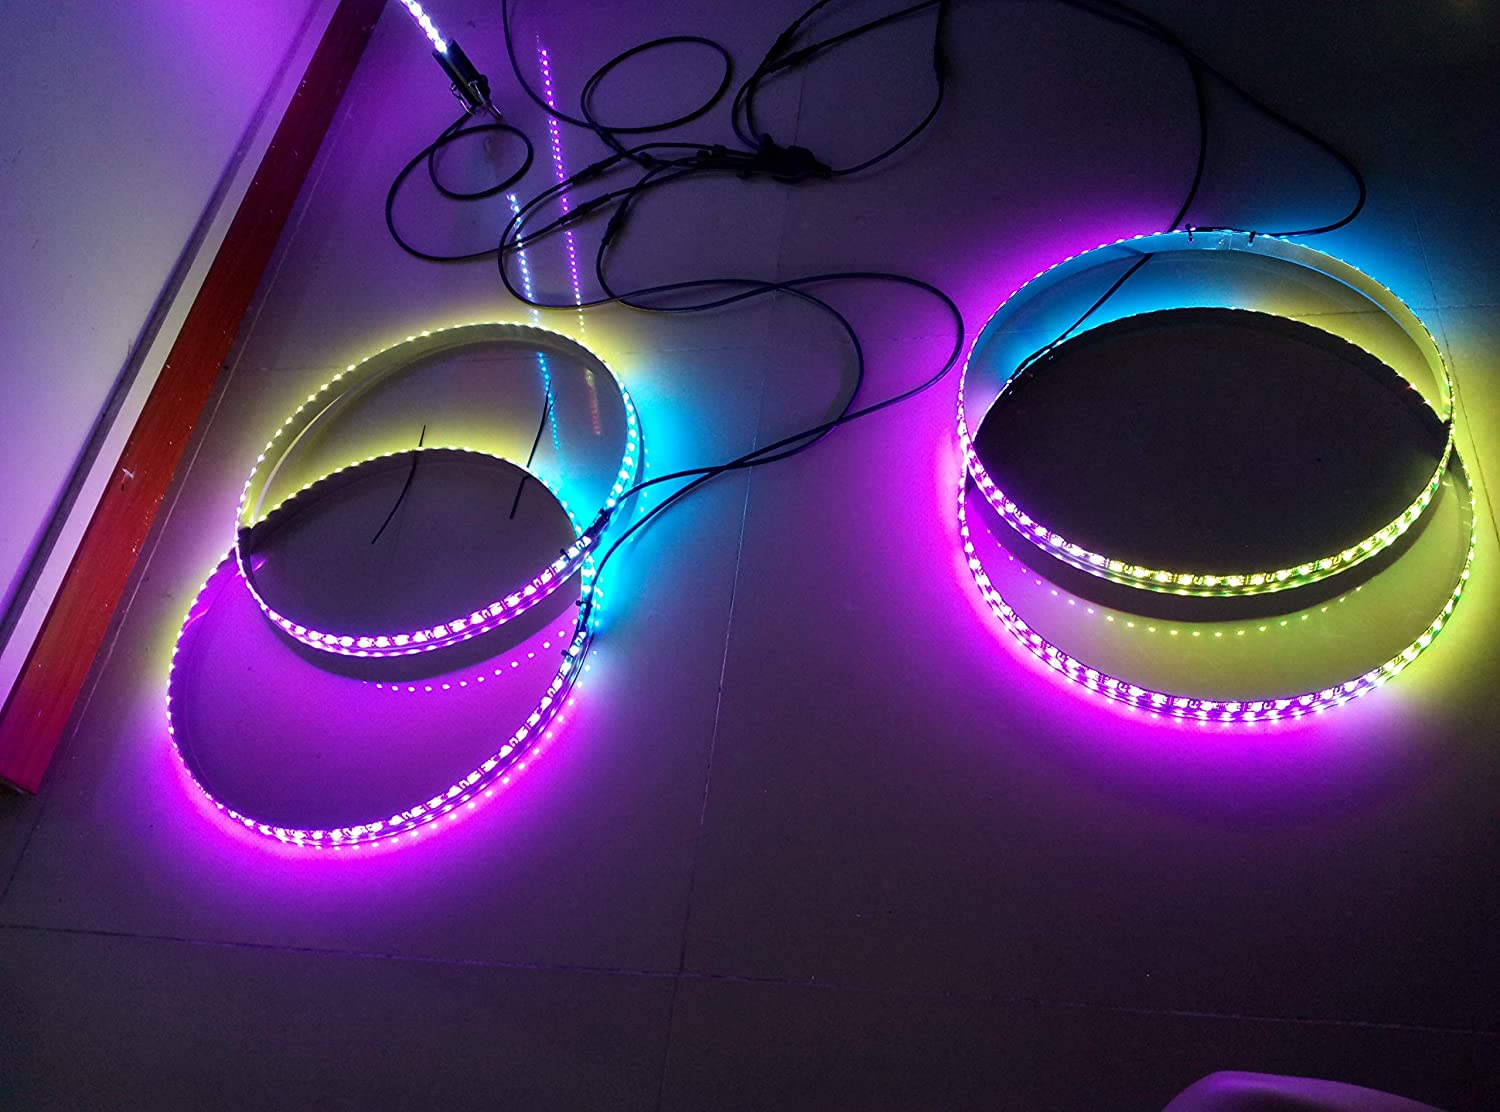 Sando Dream Chasing Color LED Wheel Ring Lights Tire Lights Remote Controlled IP68 Waterproof 4 Lights